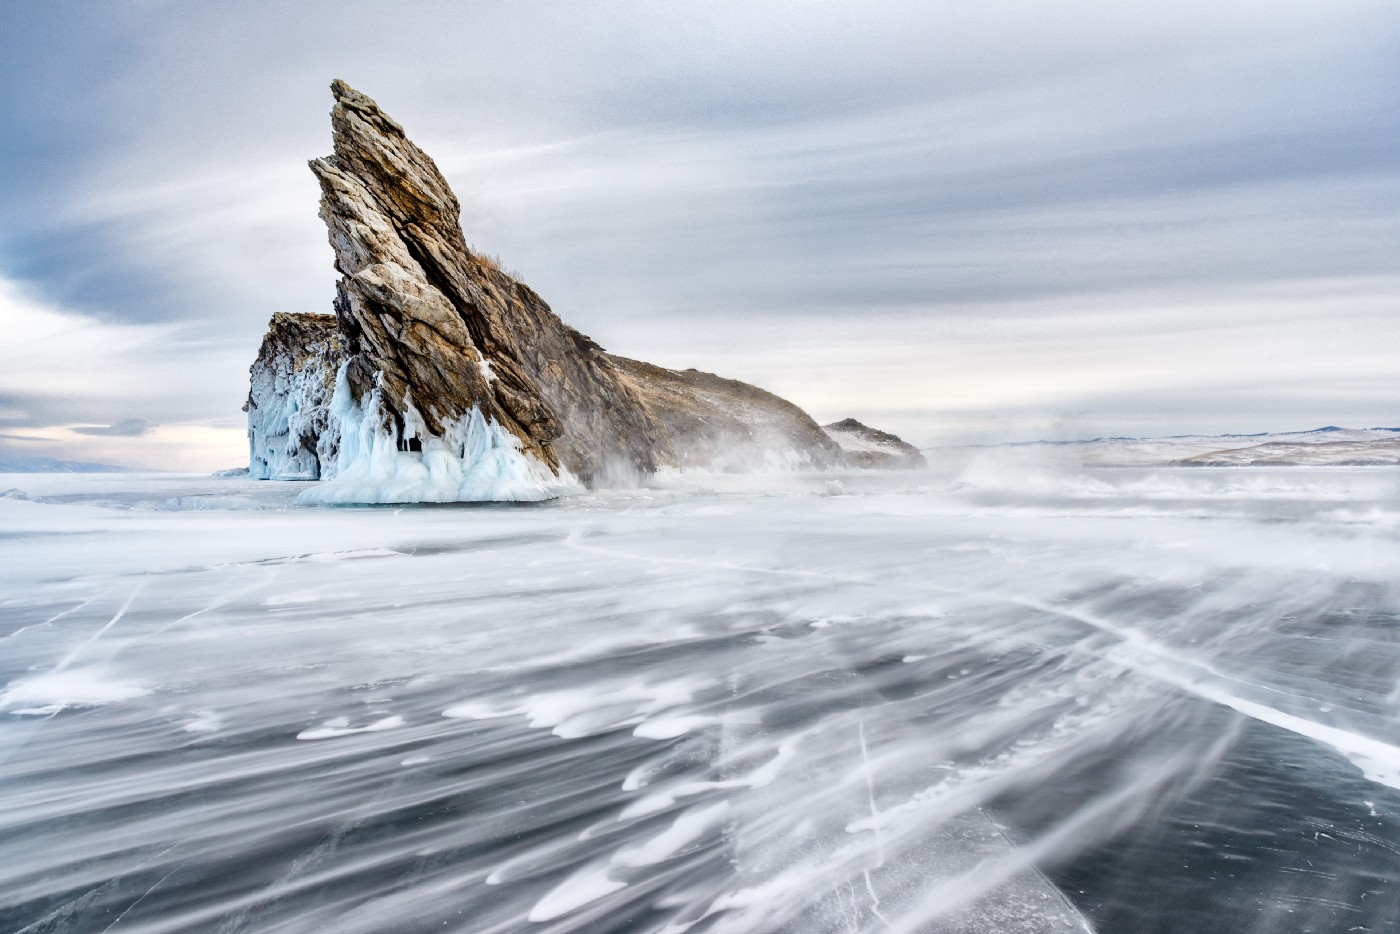 A rock covered in snow jutting out of a frozen lake